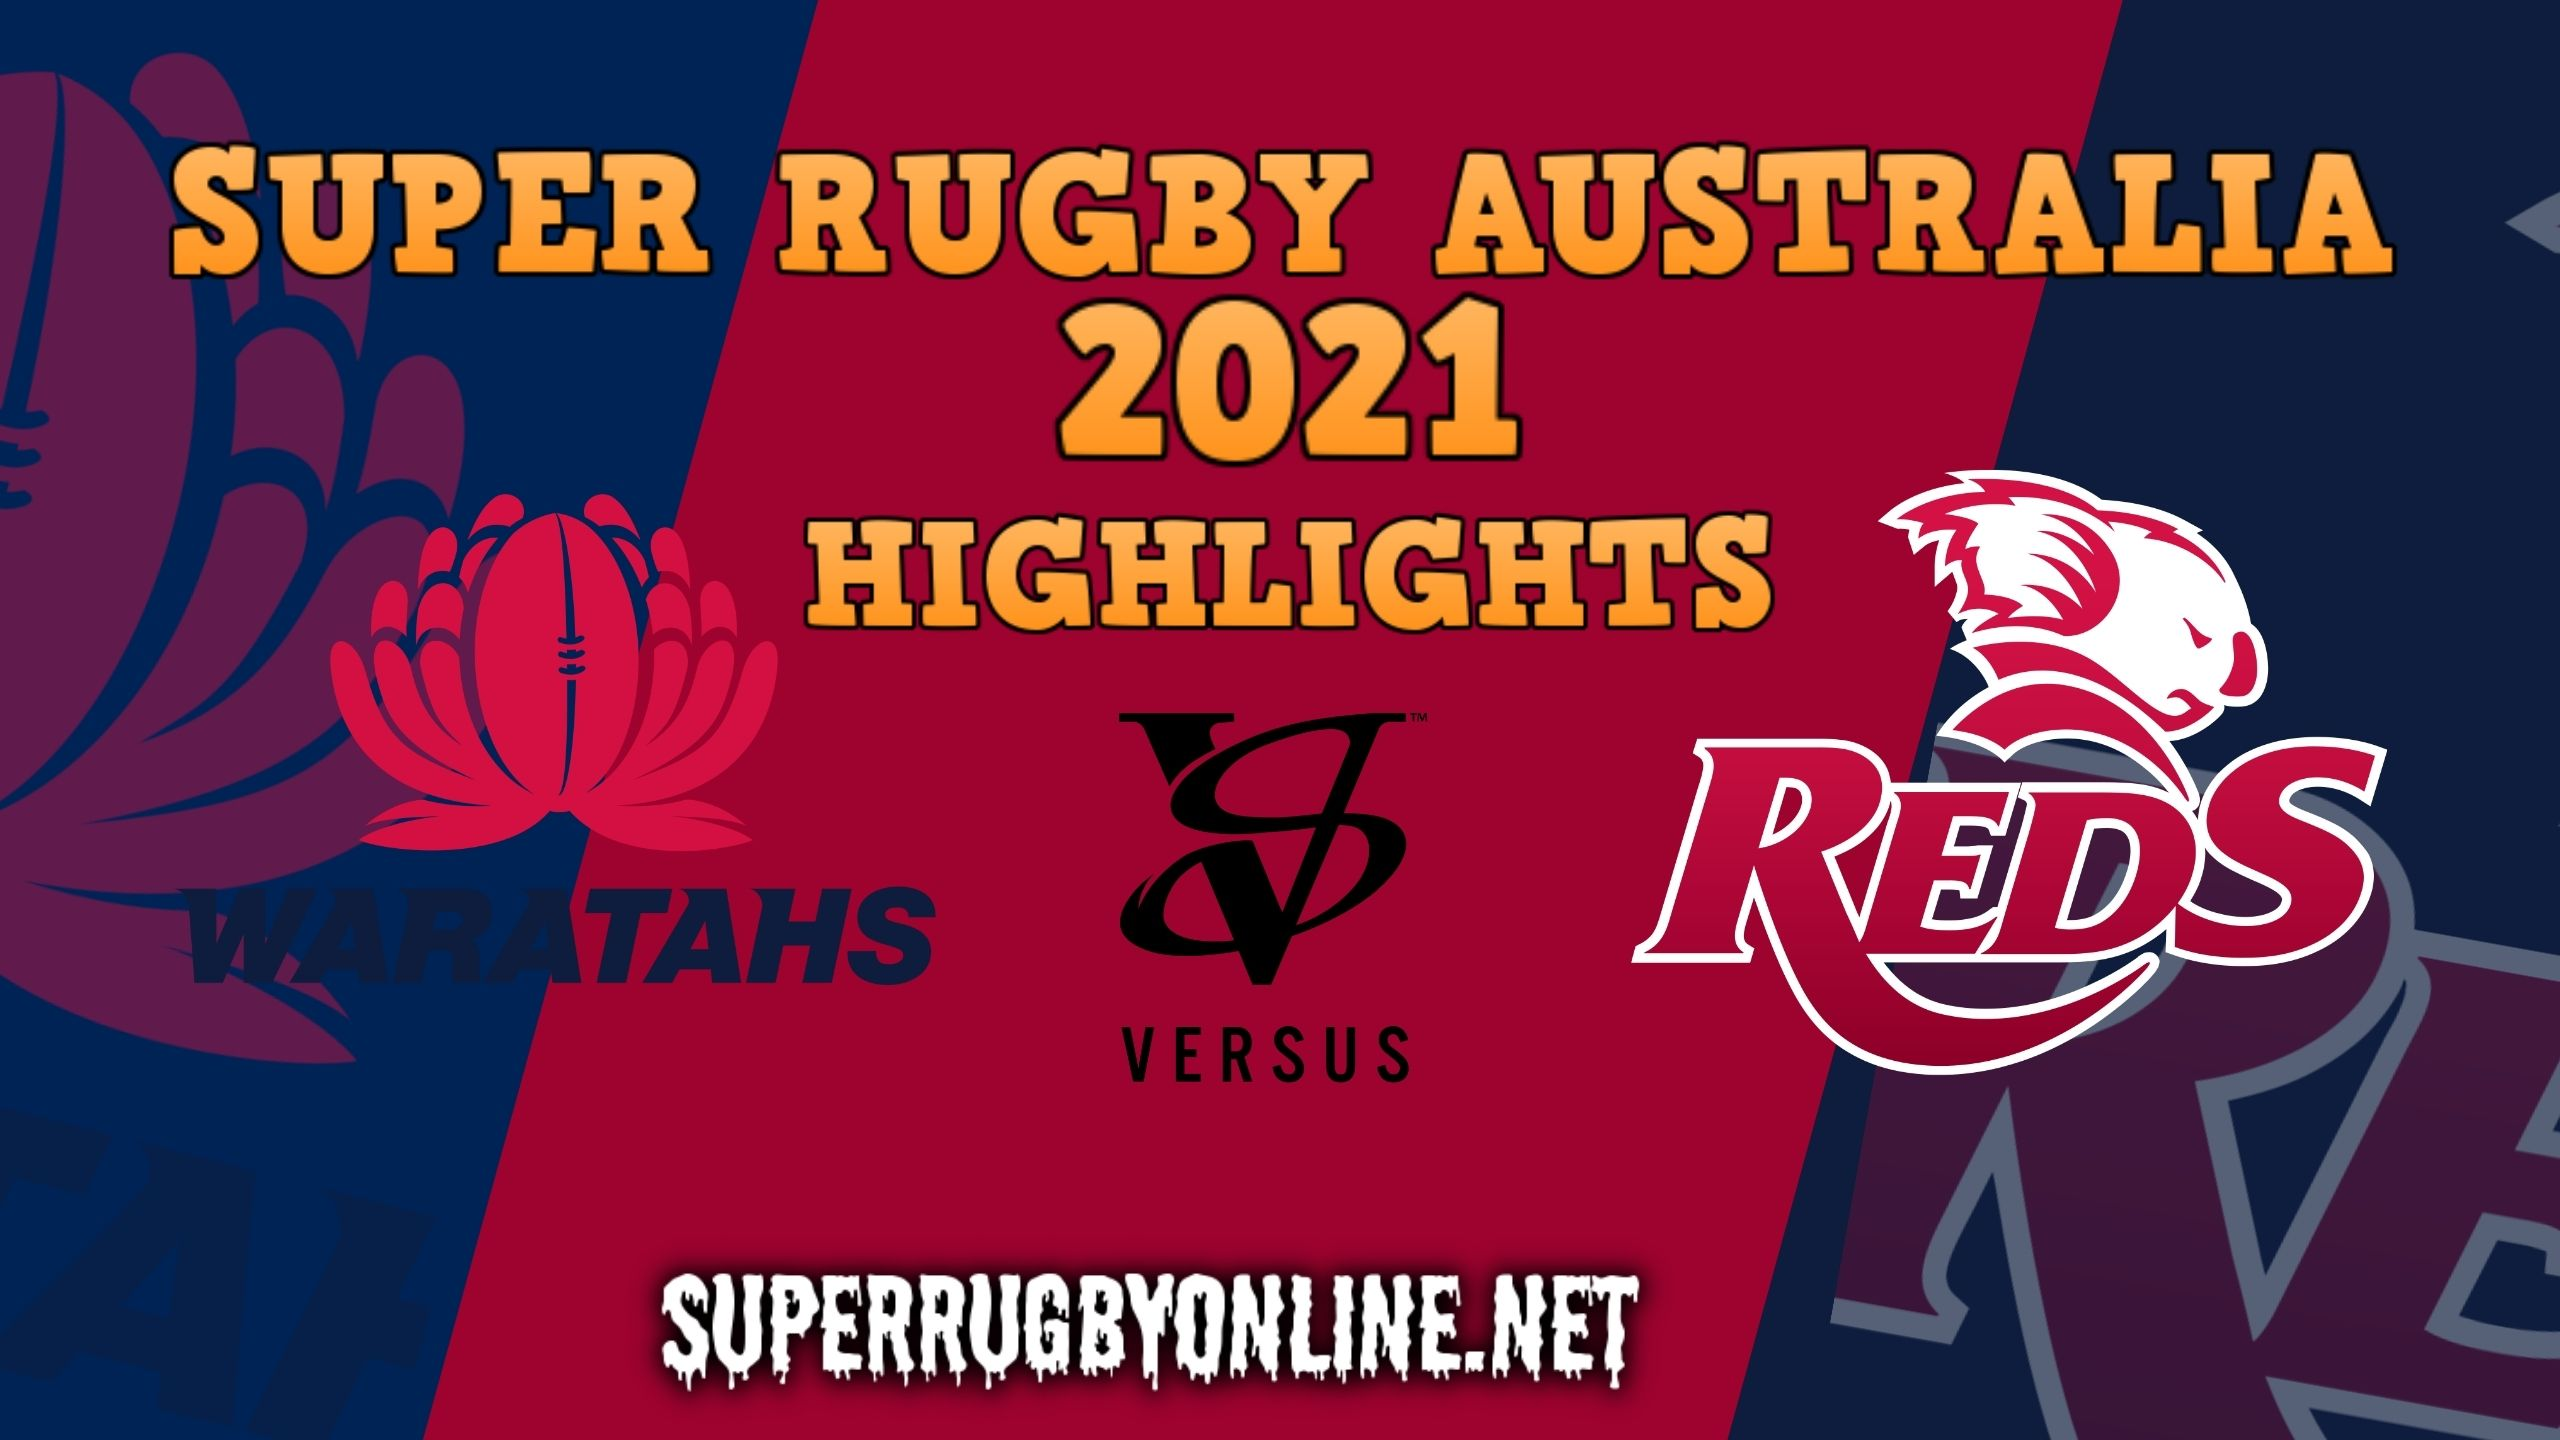 Waratahs Vs Reds Highlights 2021 Rd 6 Super Rugby